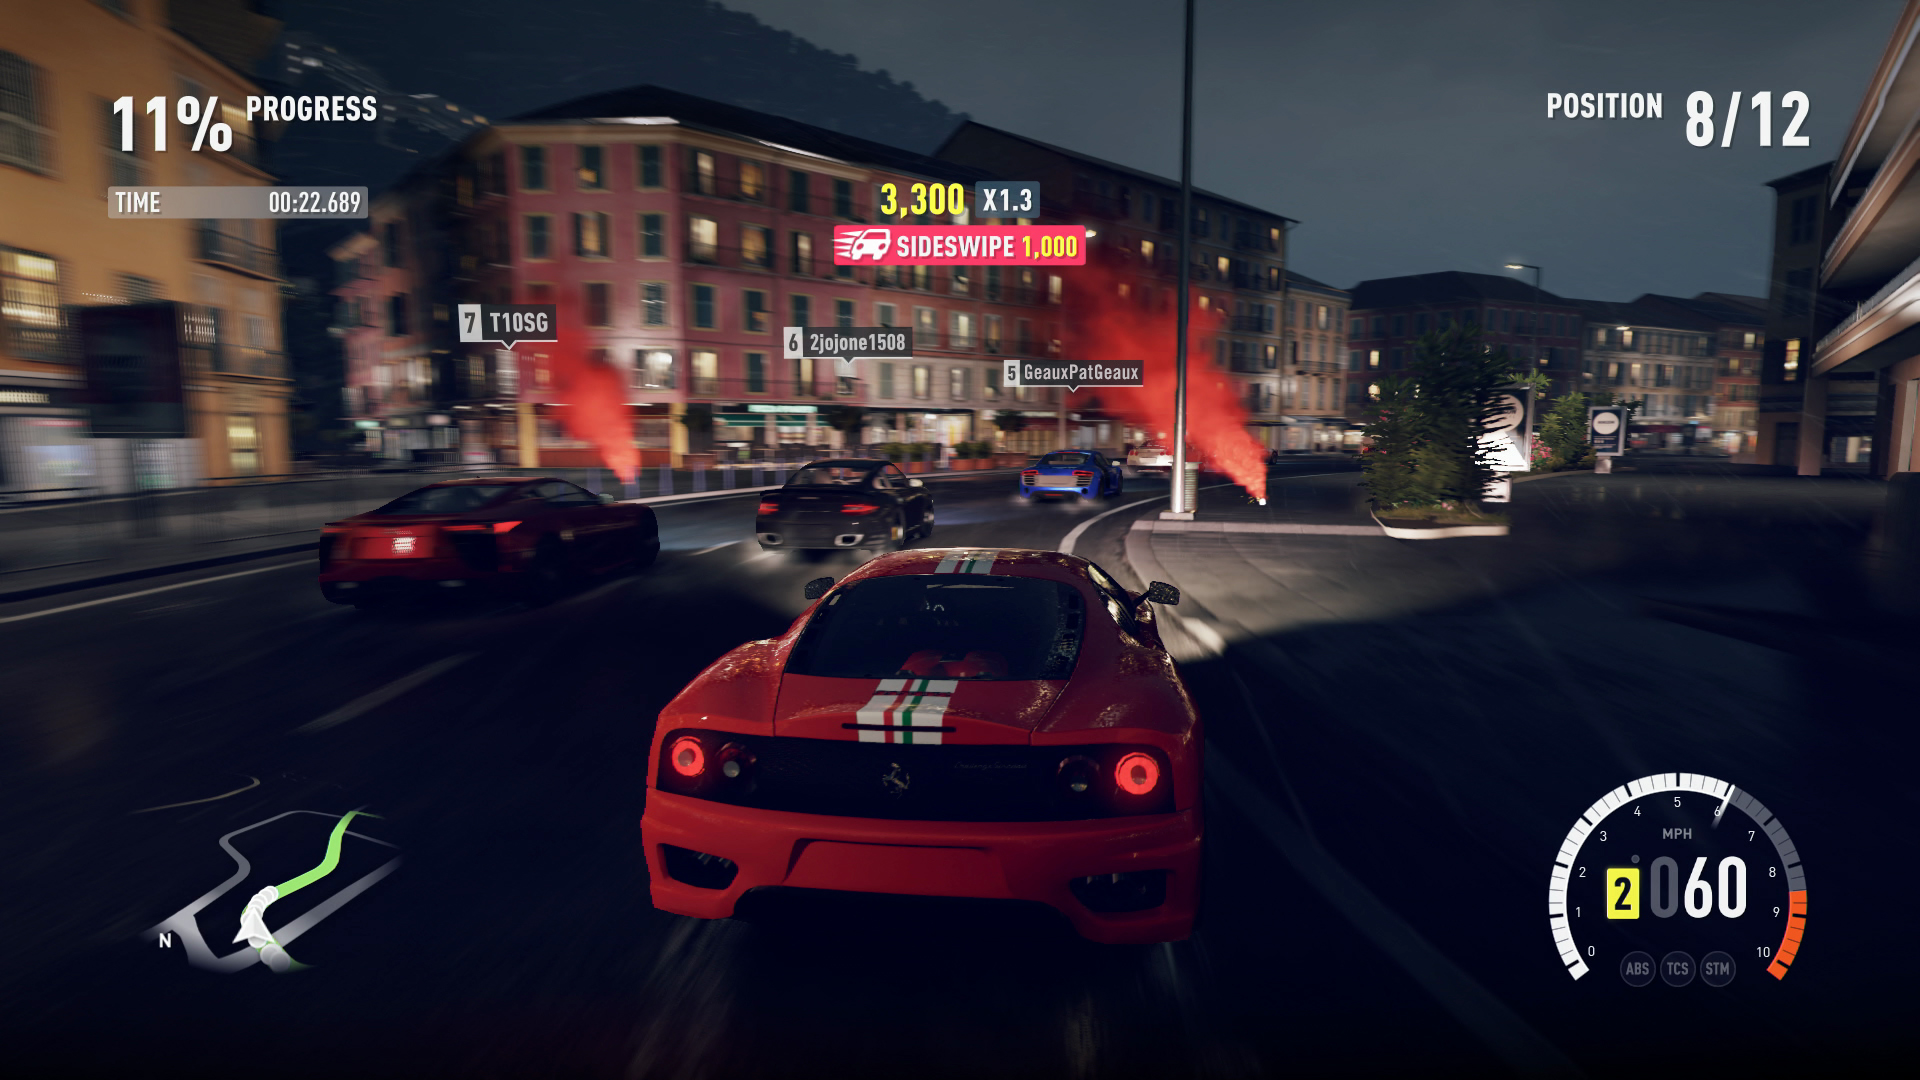 Forza Horizon 2 Massive Multiplayer Online Massive Fun